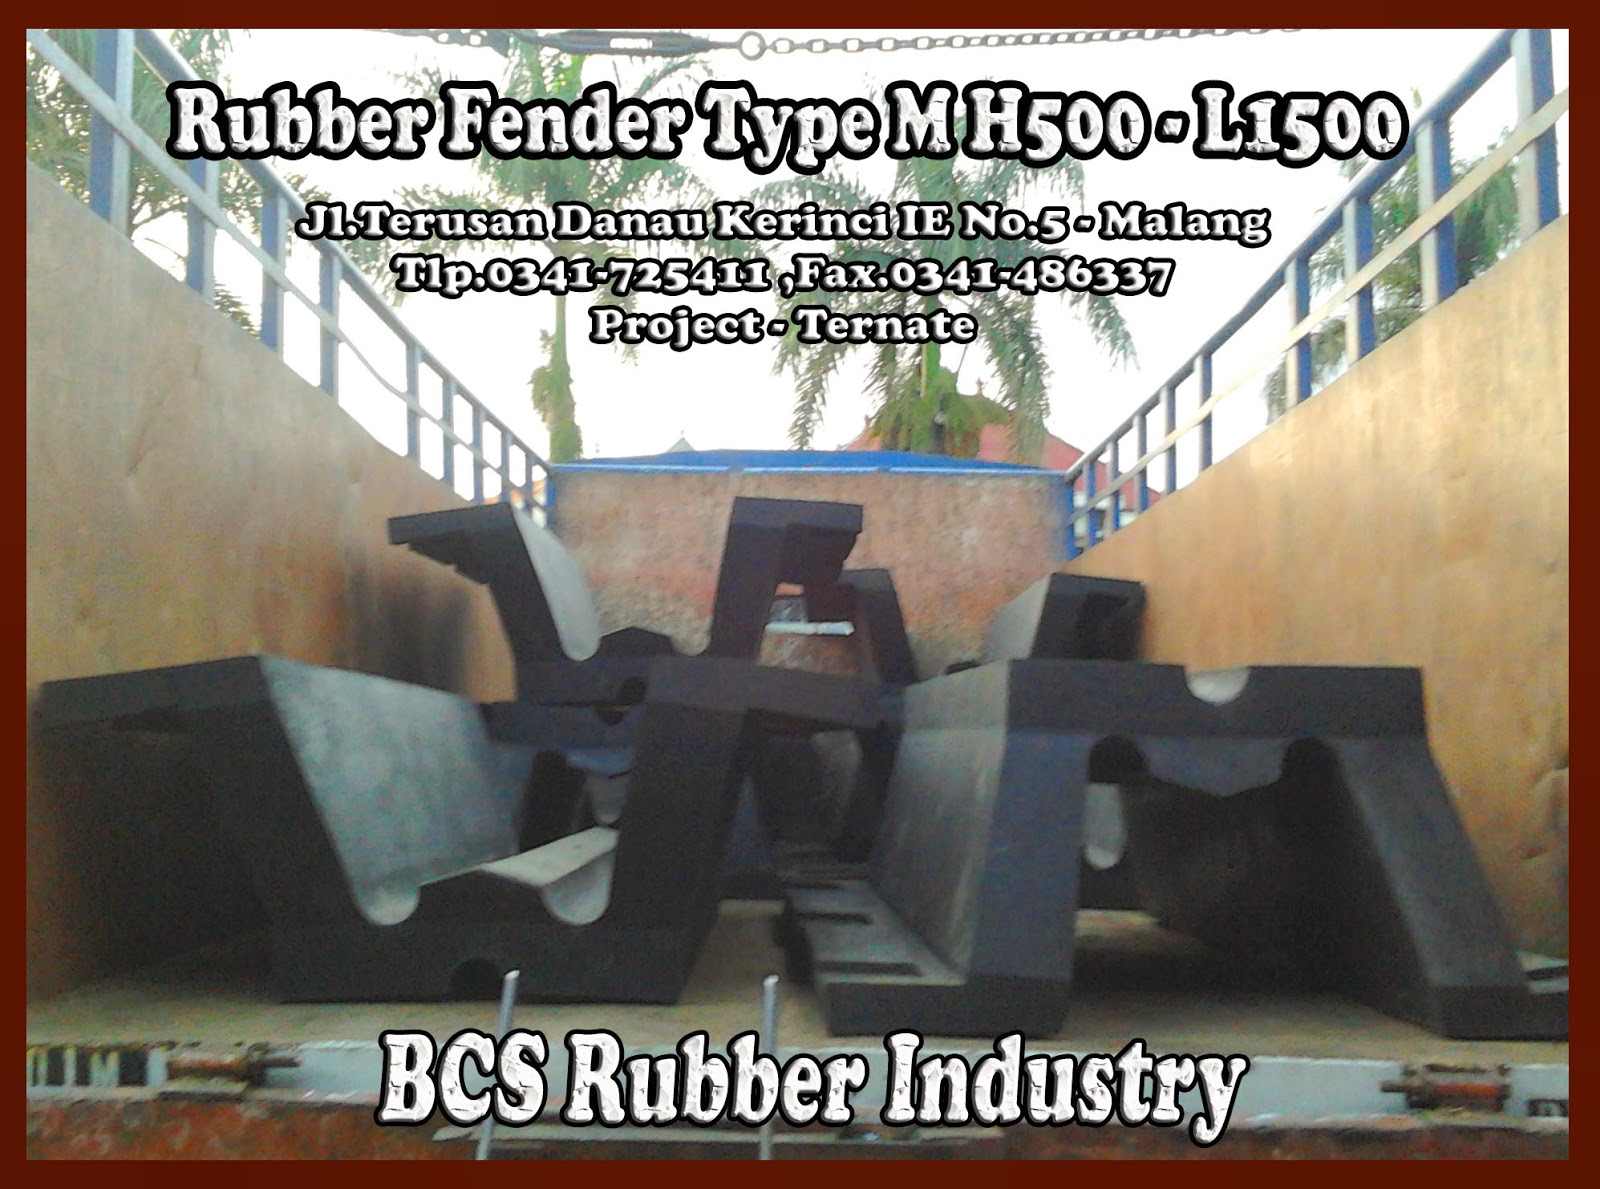 """RUBBER FENDER TYPE M""'"